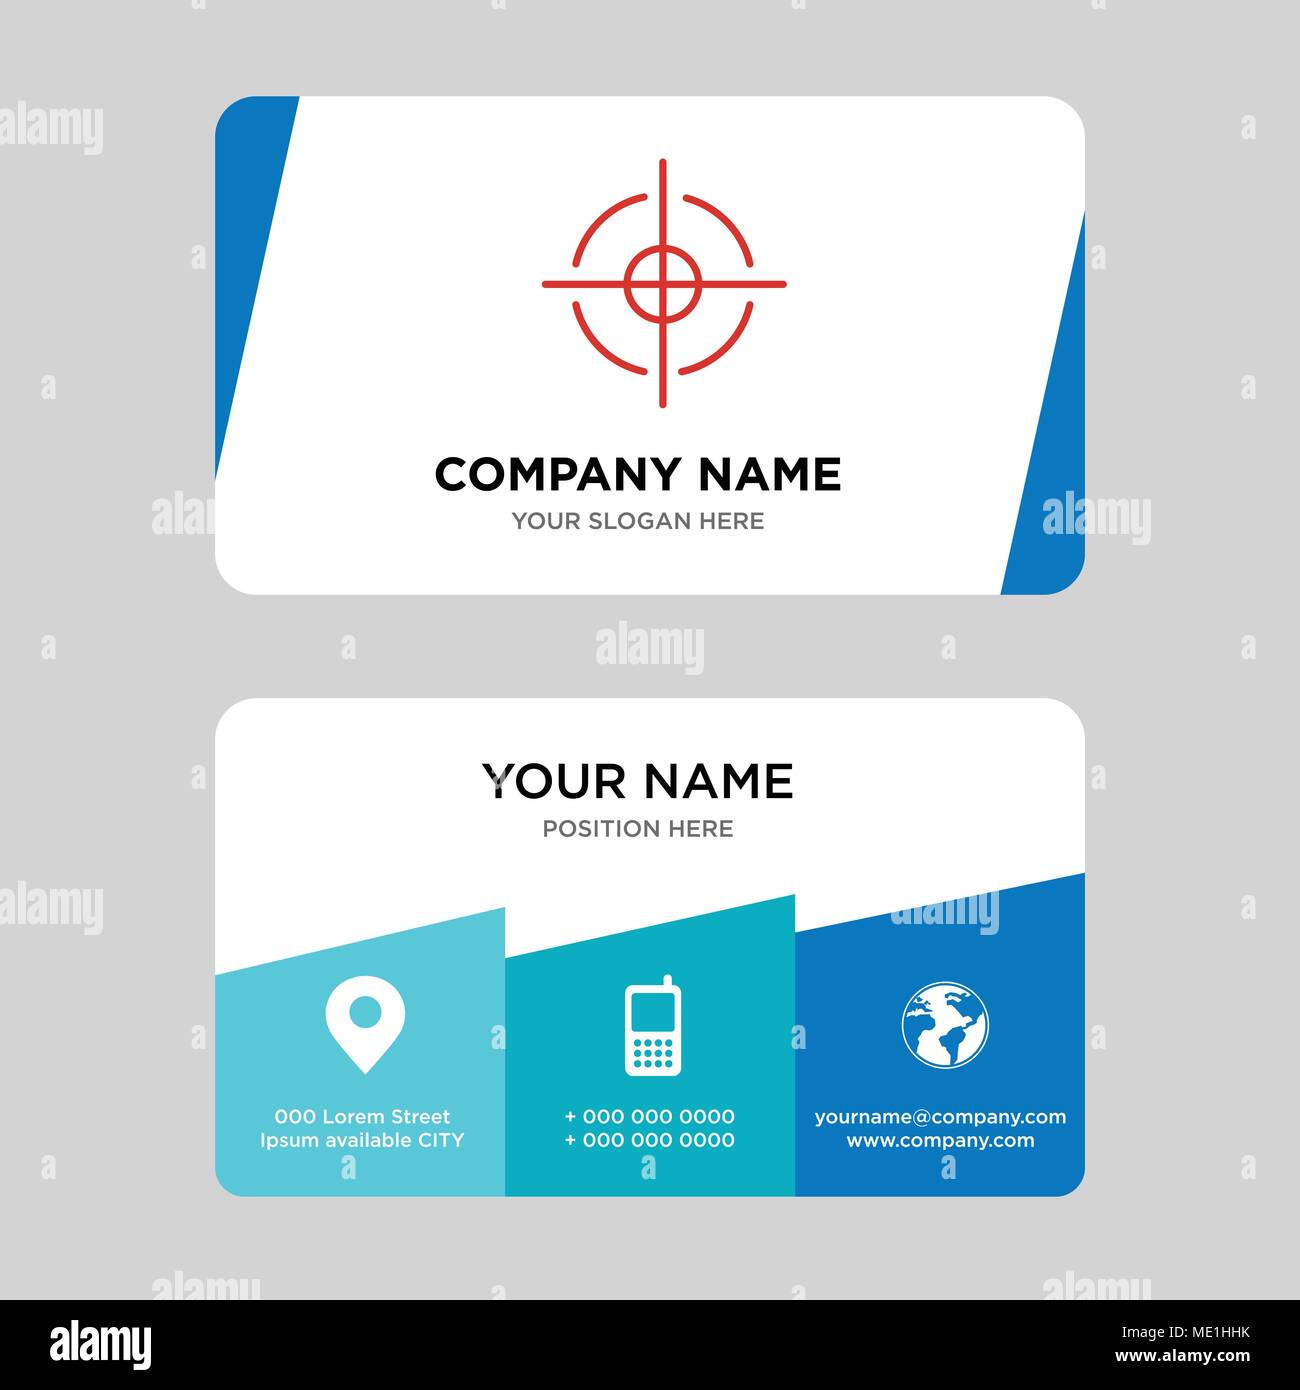 3d data analytics business card design template visiting for your 3d data analytics business card design template visiting for your company modern creative and clean identity card vector illustration cheaphphosting Gallery